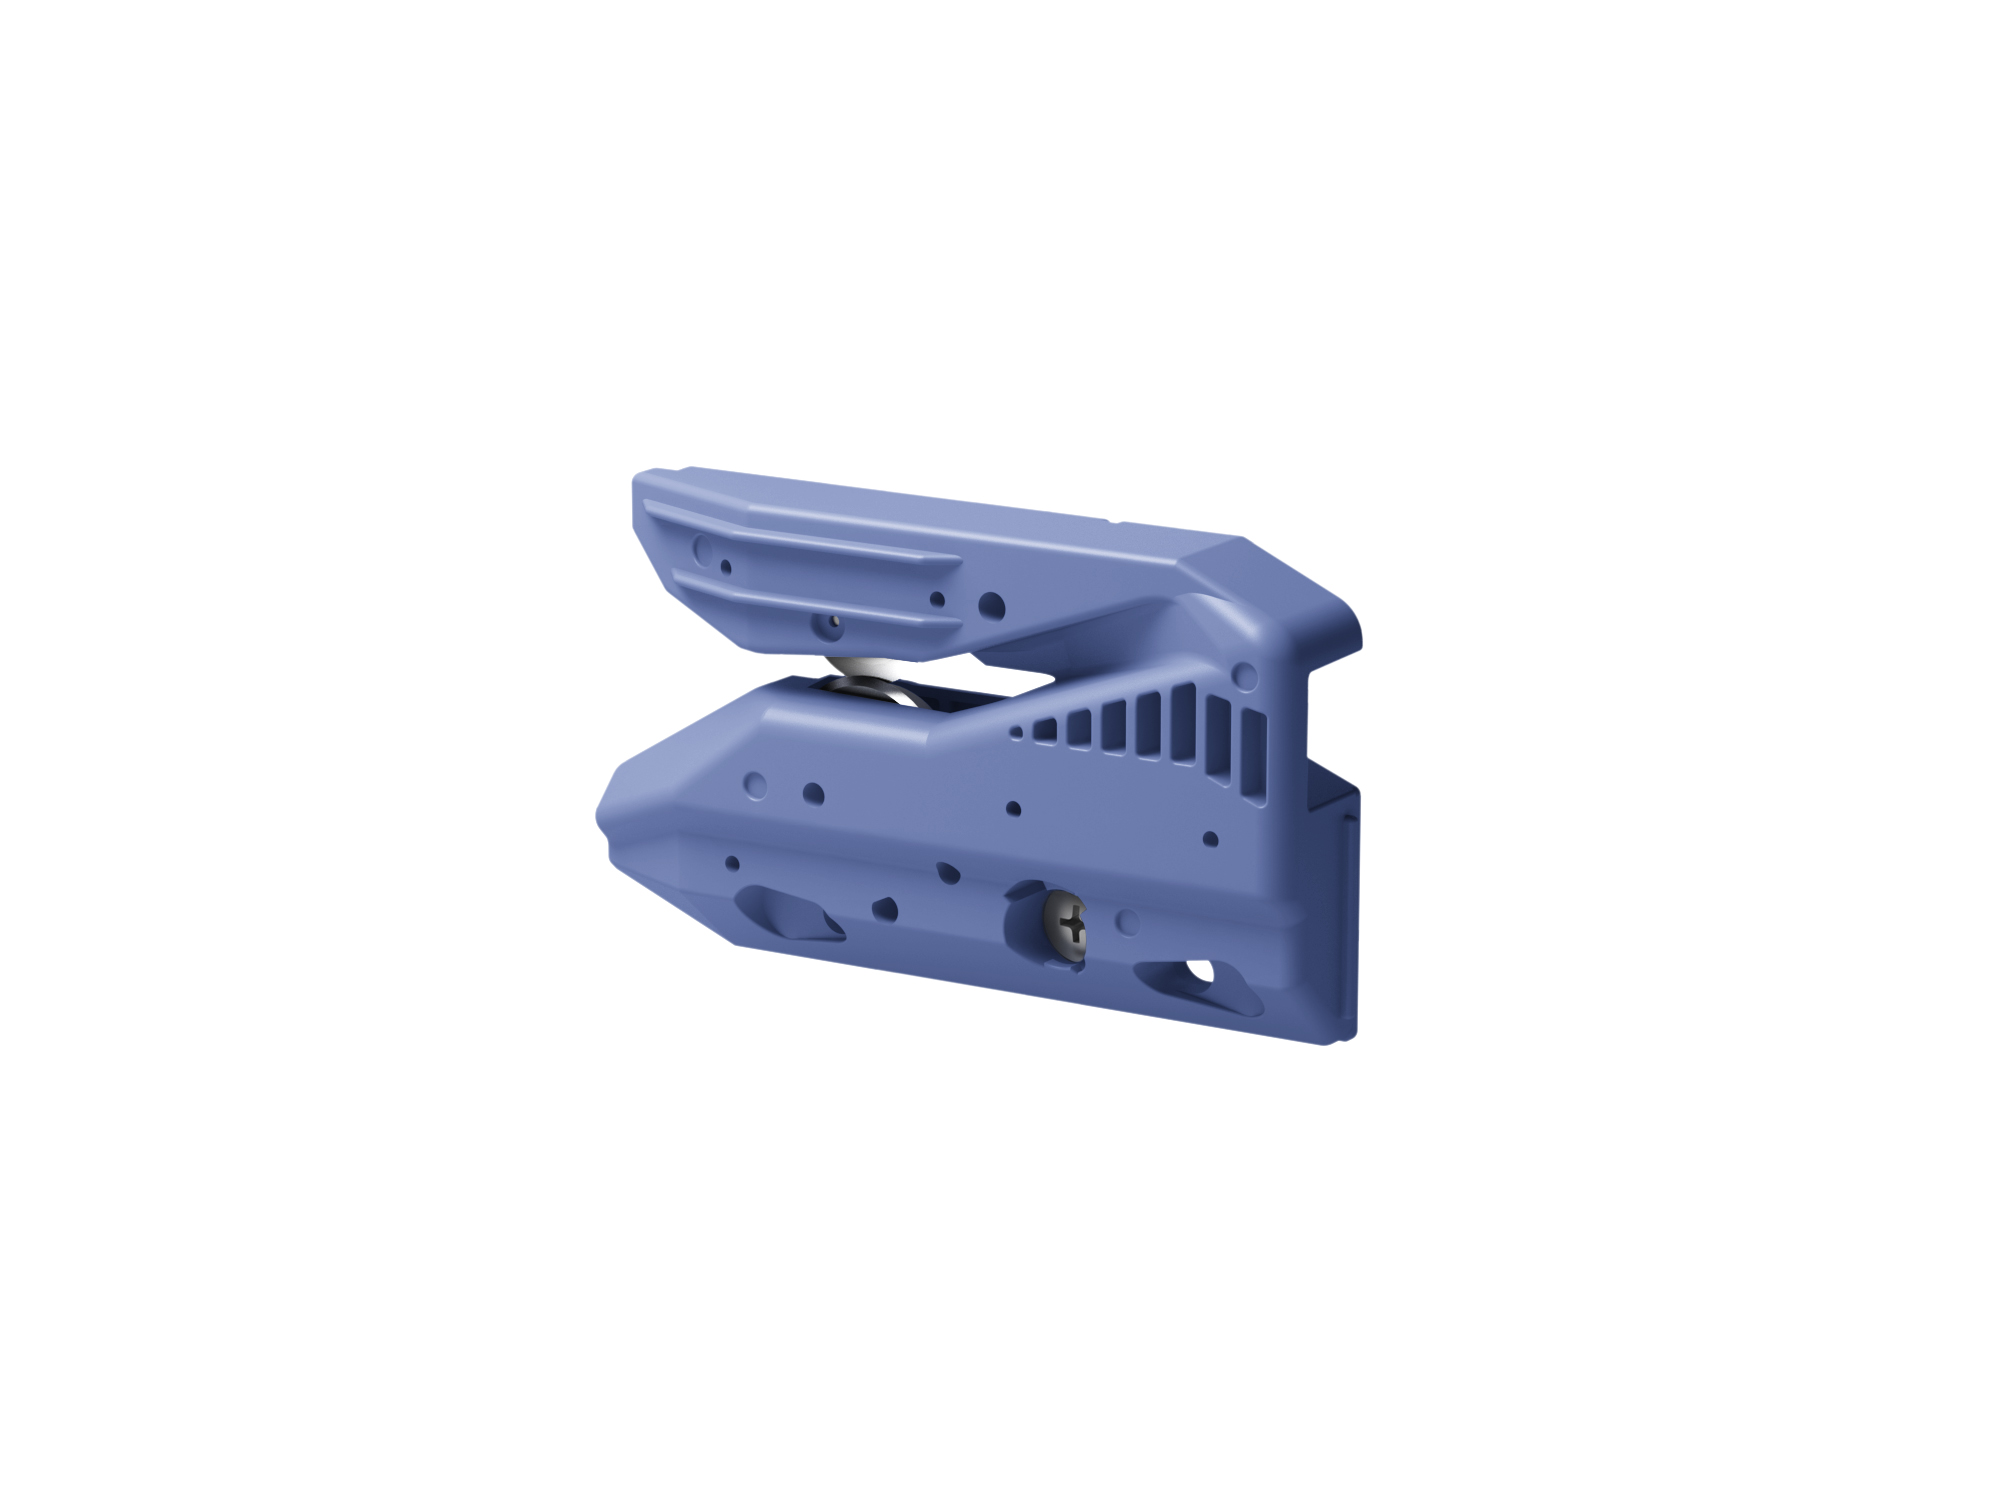 Auto Cutter Spare Blade for the Epson P10000 & P20000